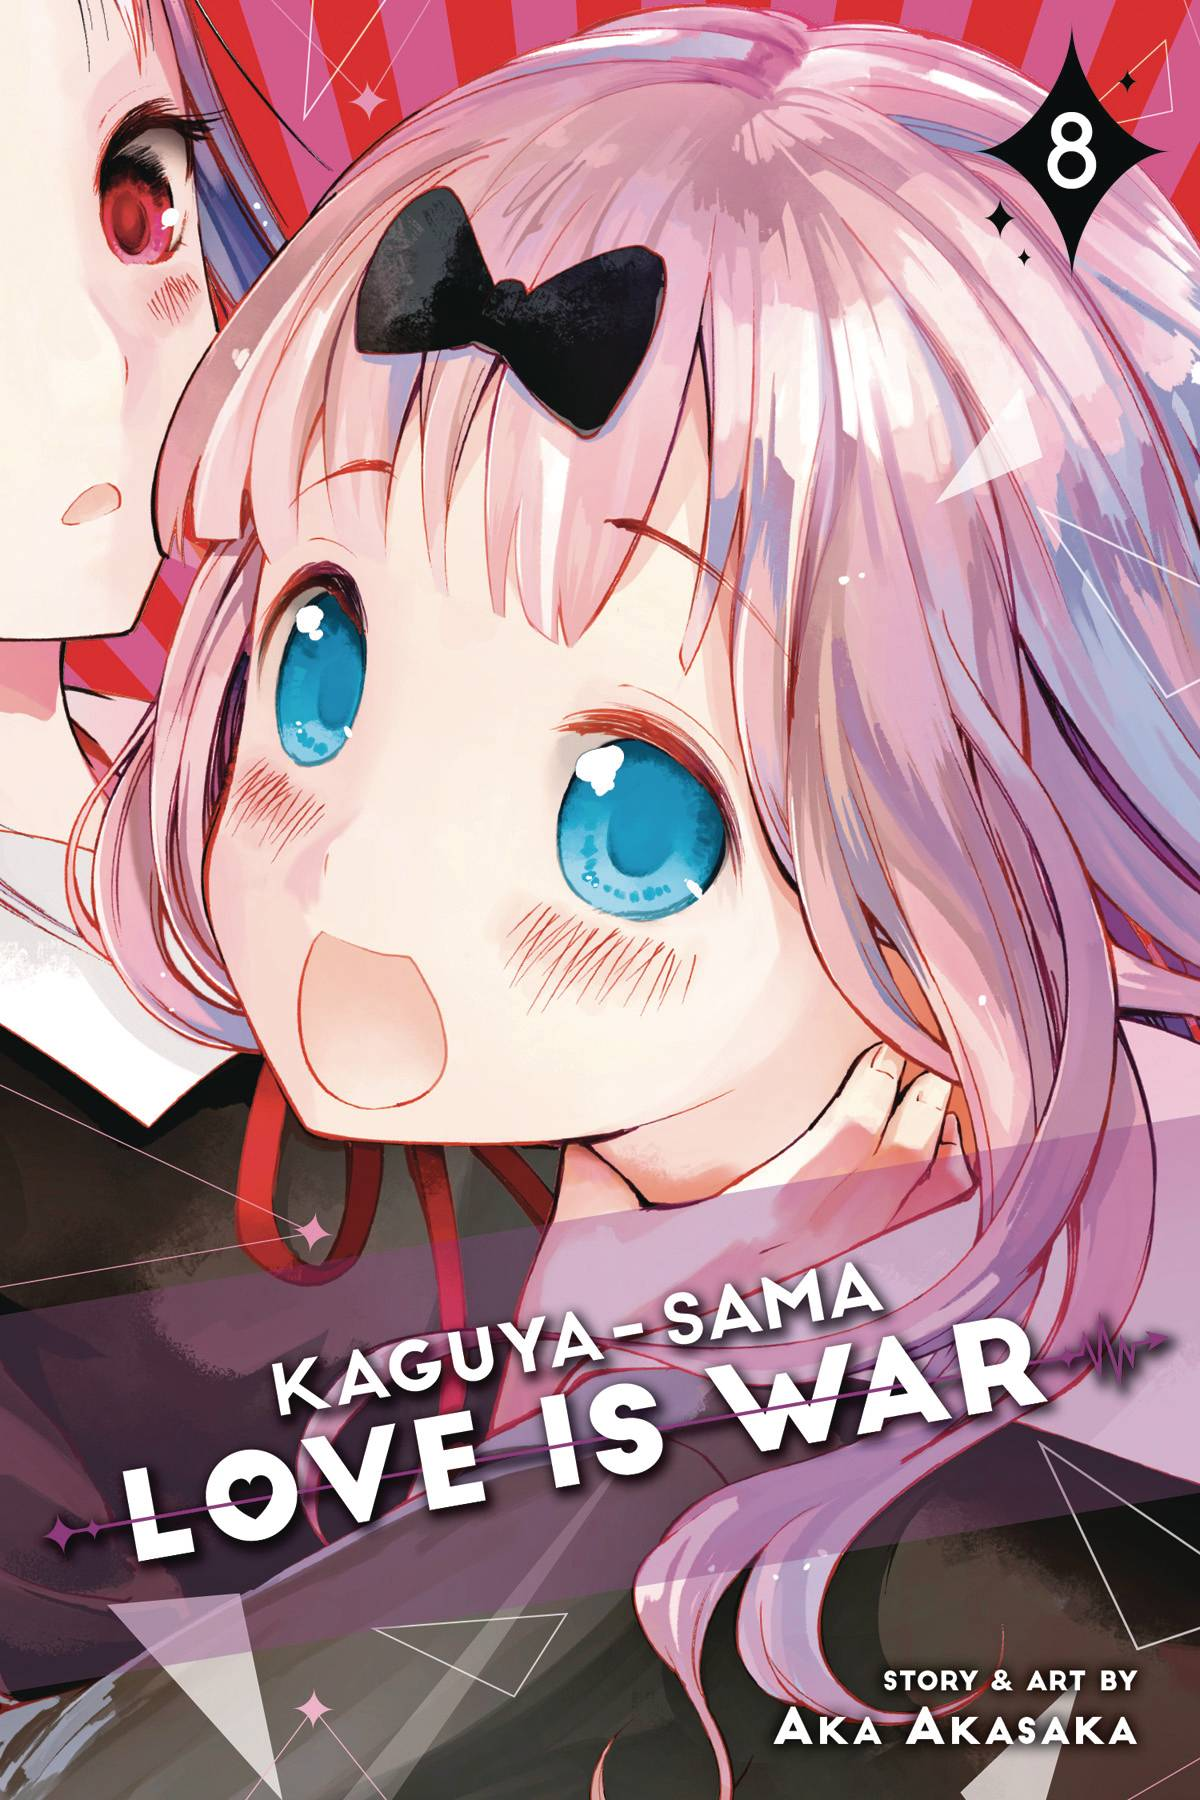 KAGUYA SAMA LOVE IS WAR GN VOL 08